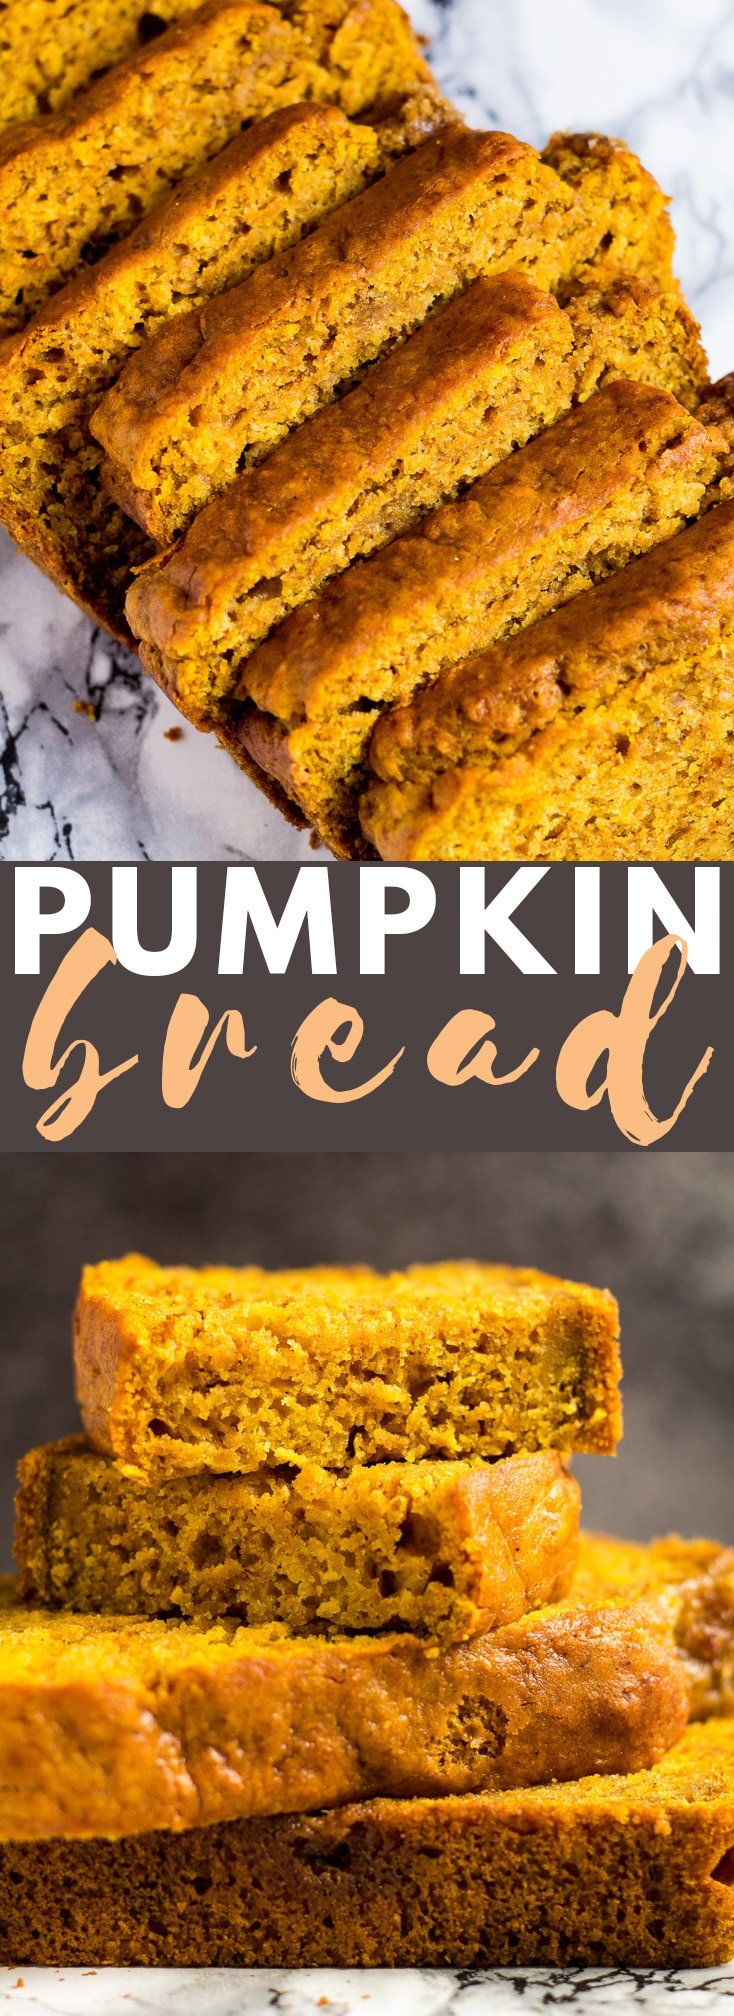 Pumpkin Bread - This incredibly moist pumpkin bread that is perfectly spiced is the BEST way to kick-start your autumn! #pumpkinbread #breadrecipes